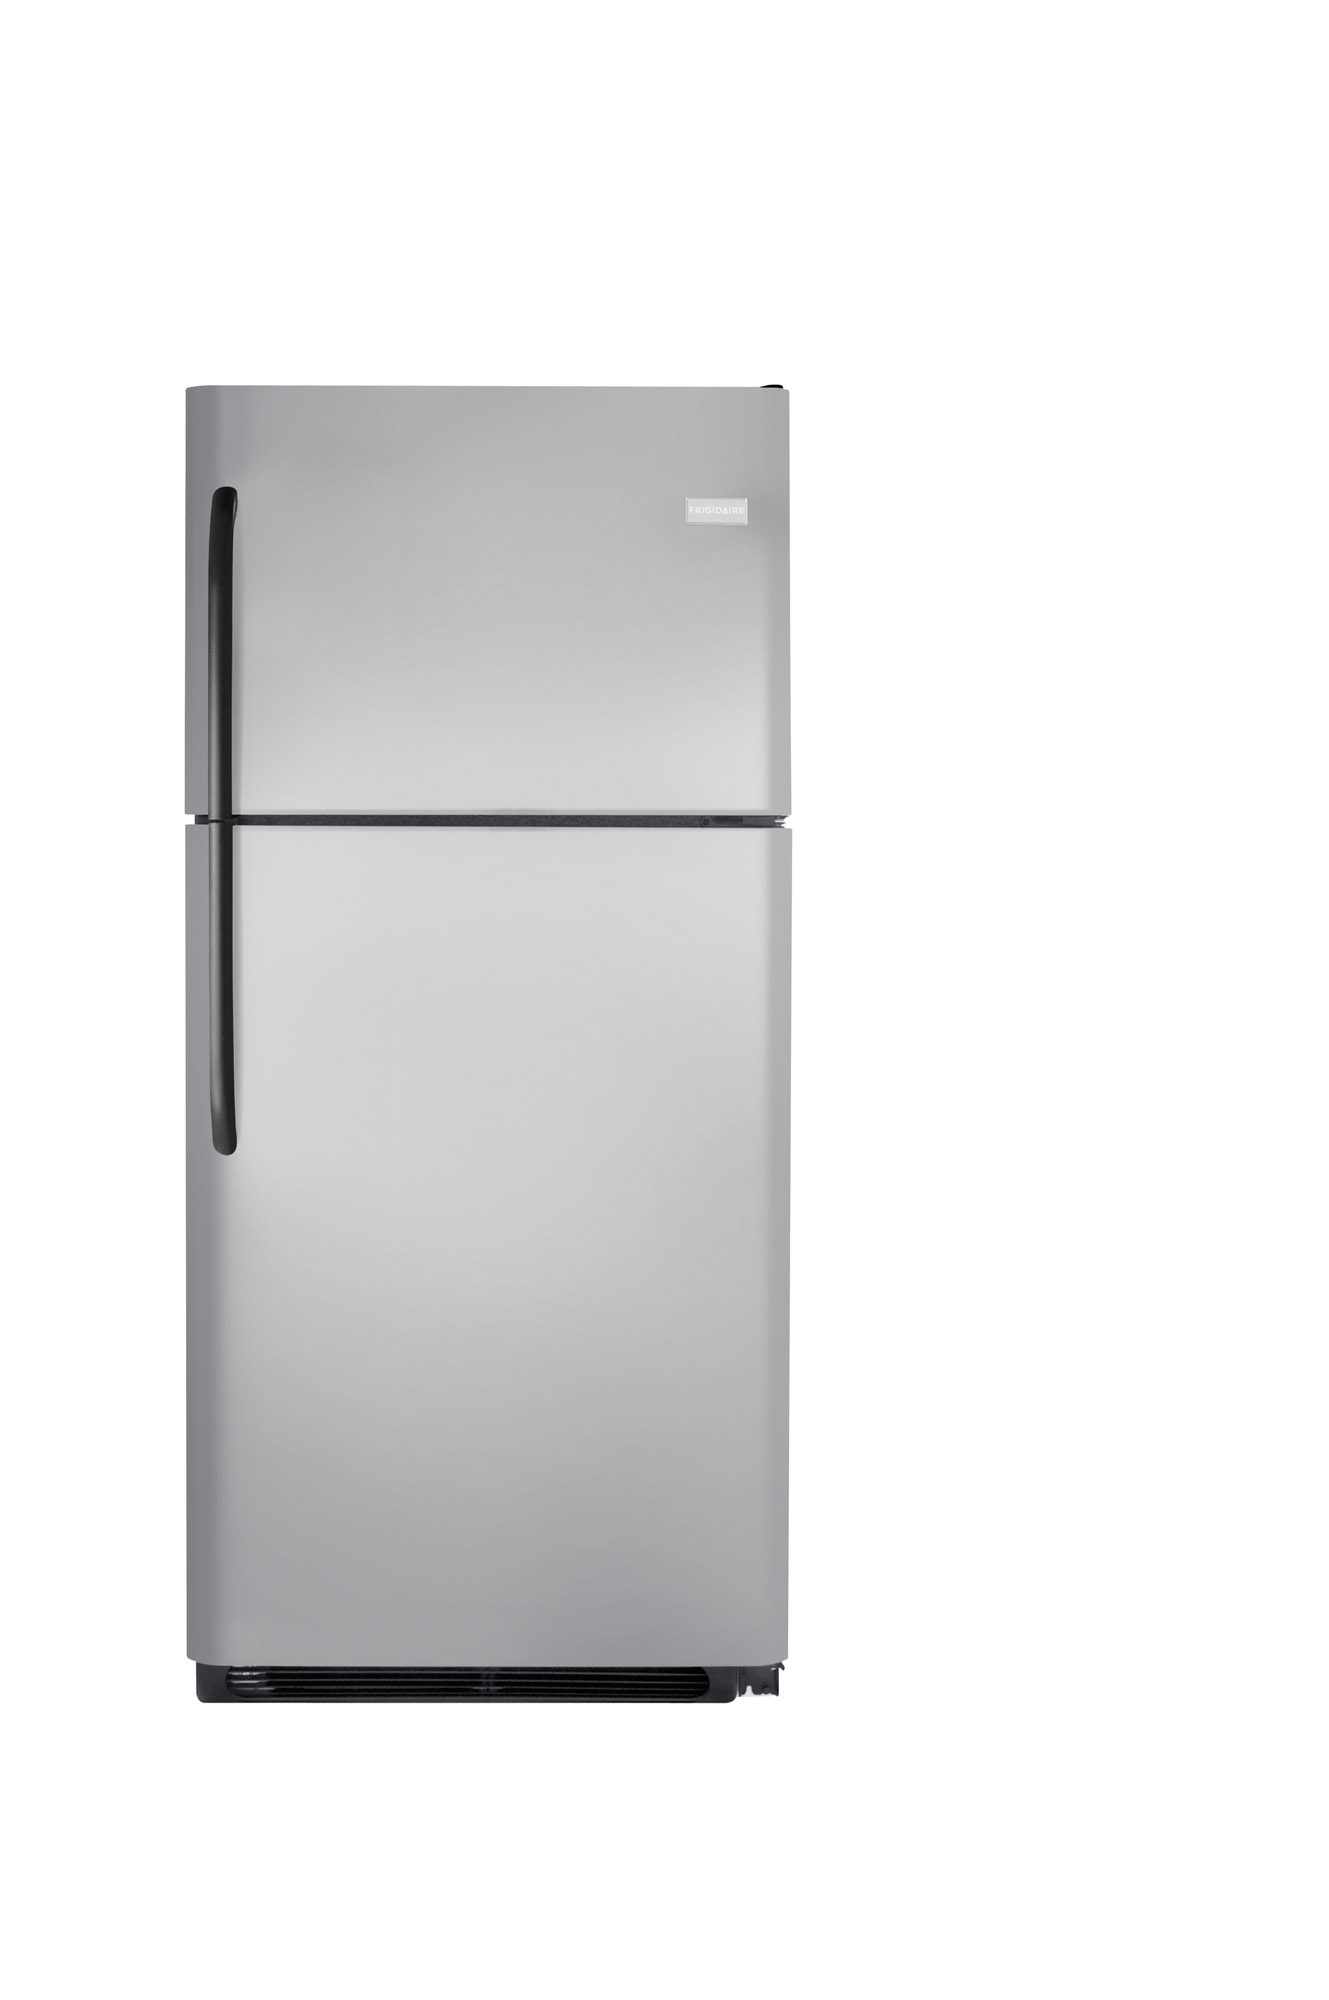 Frigidaire Refrigerator Model Ffht2126lm4 Parts And